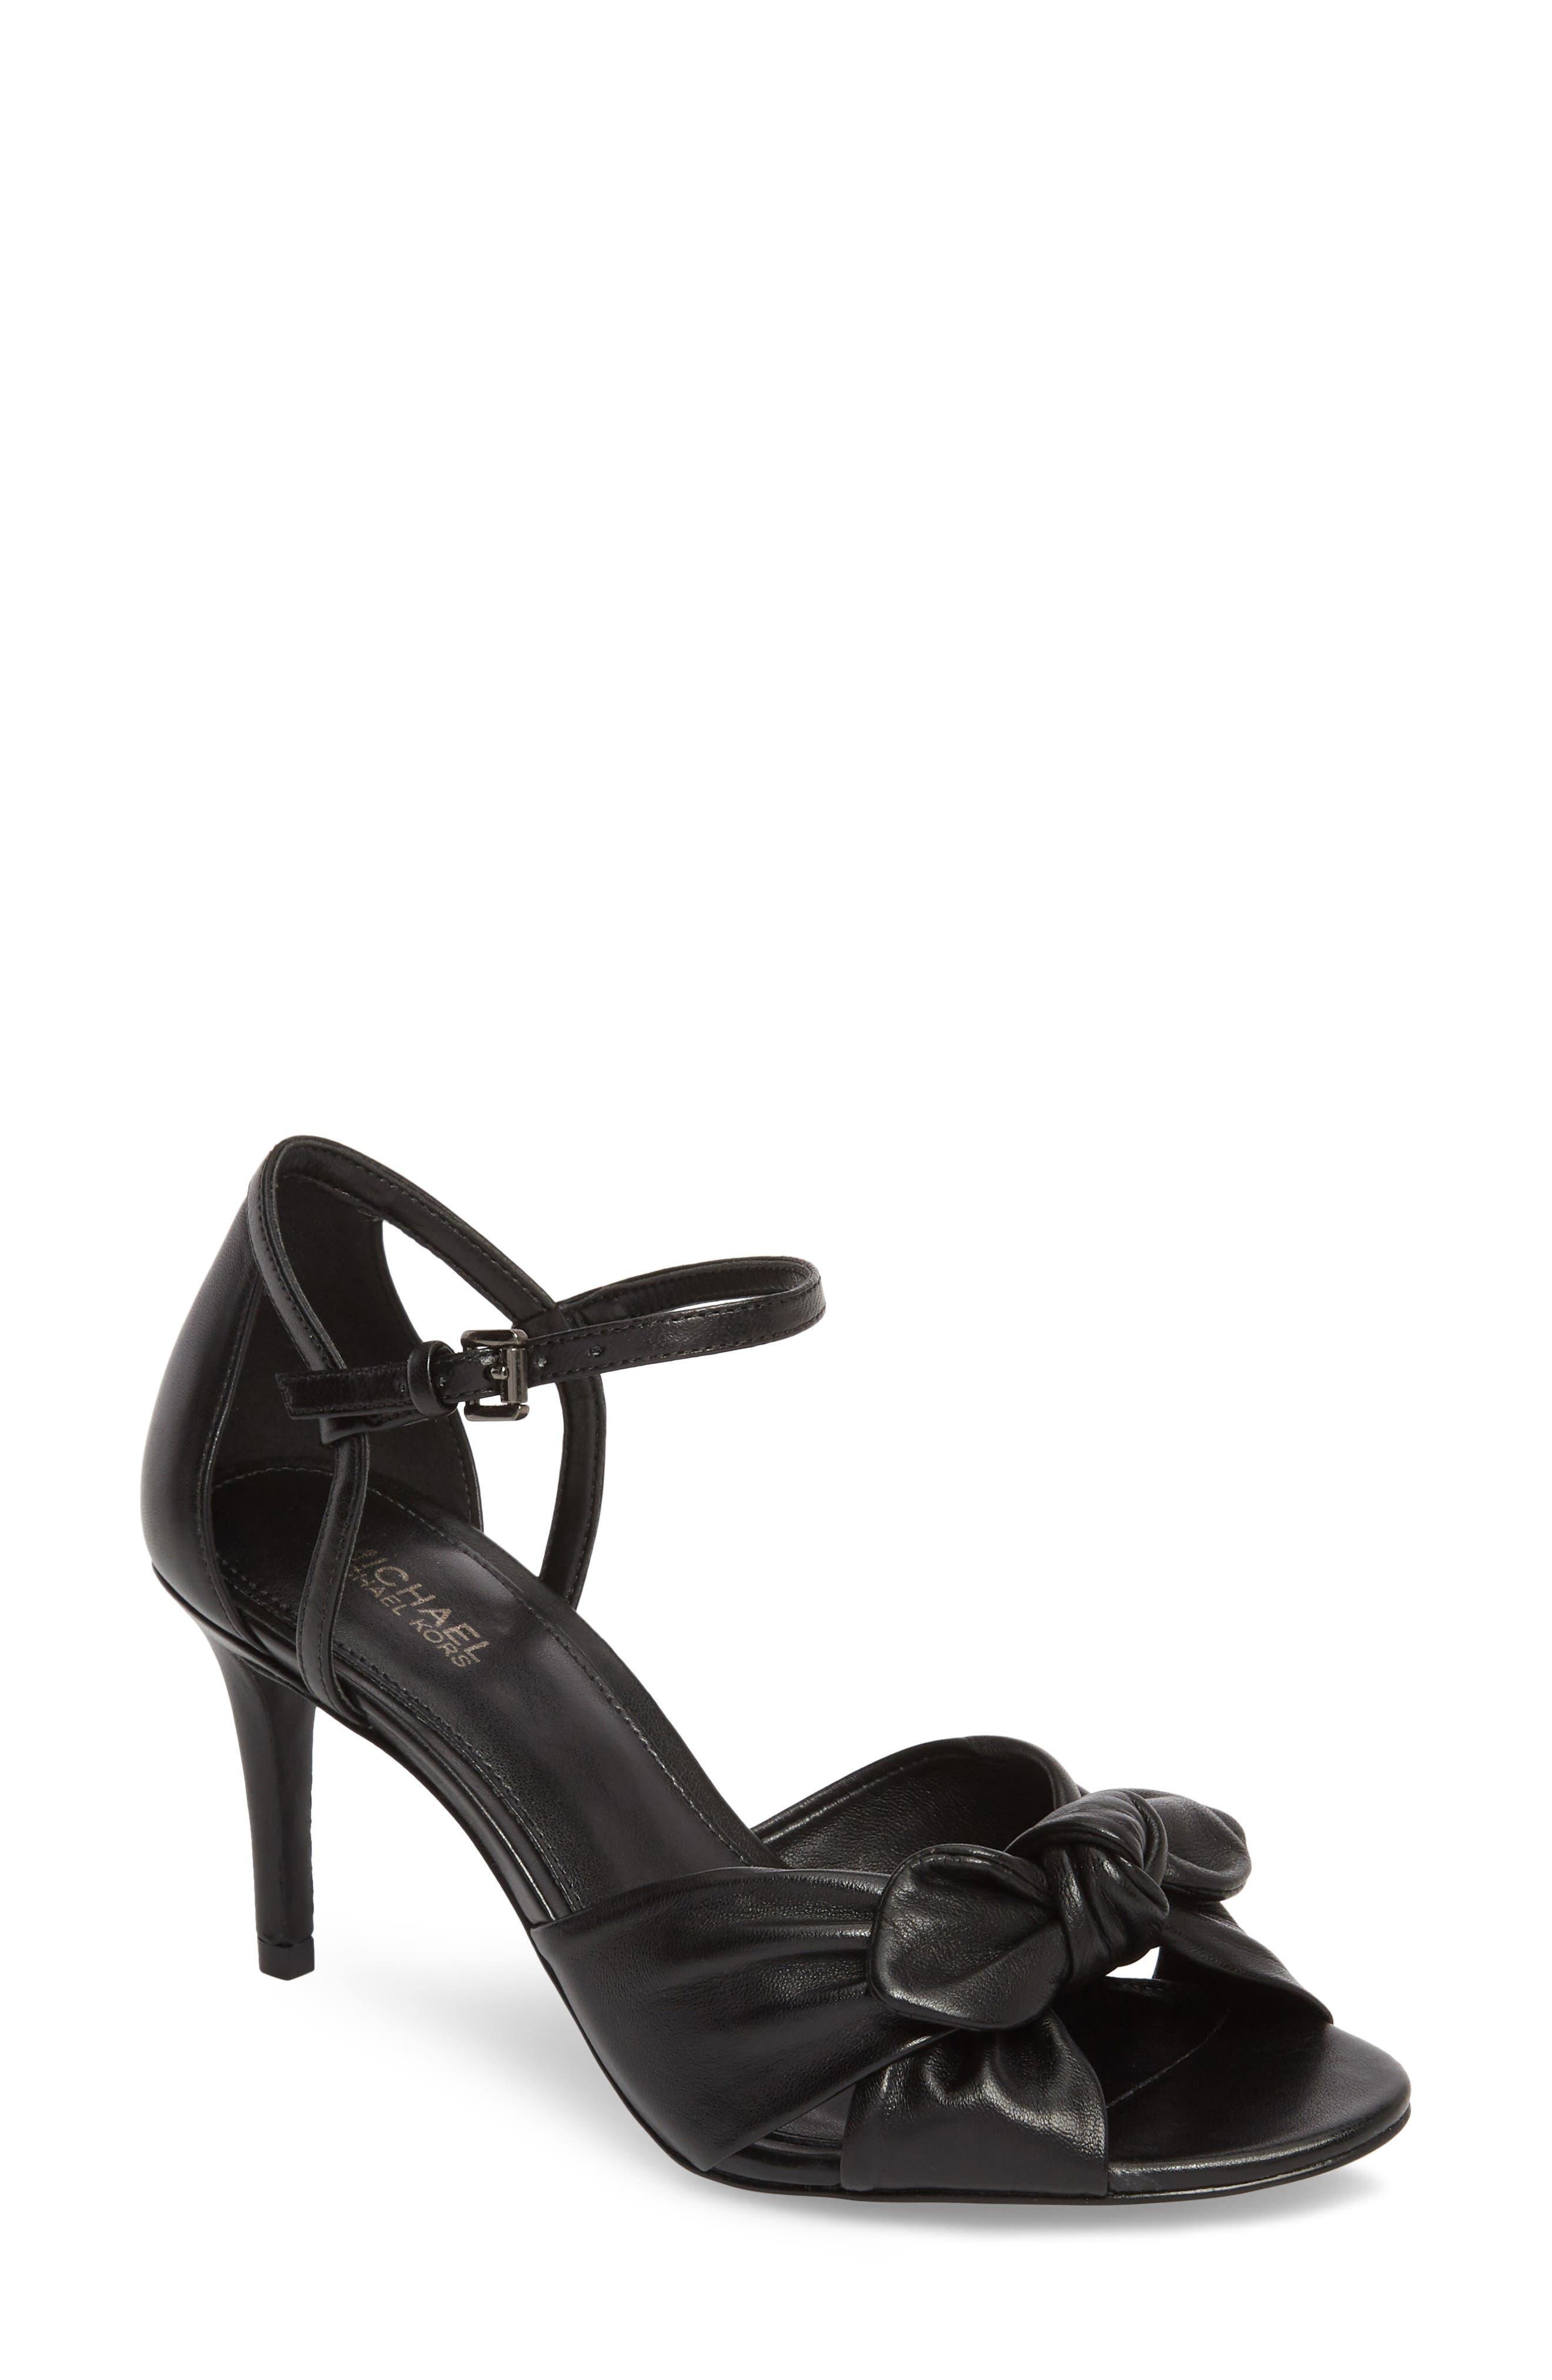 Pippa Sandal,                             Main thumbnail 1, color,                             Black